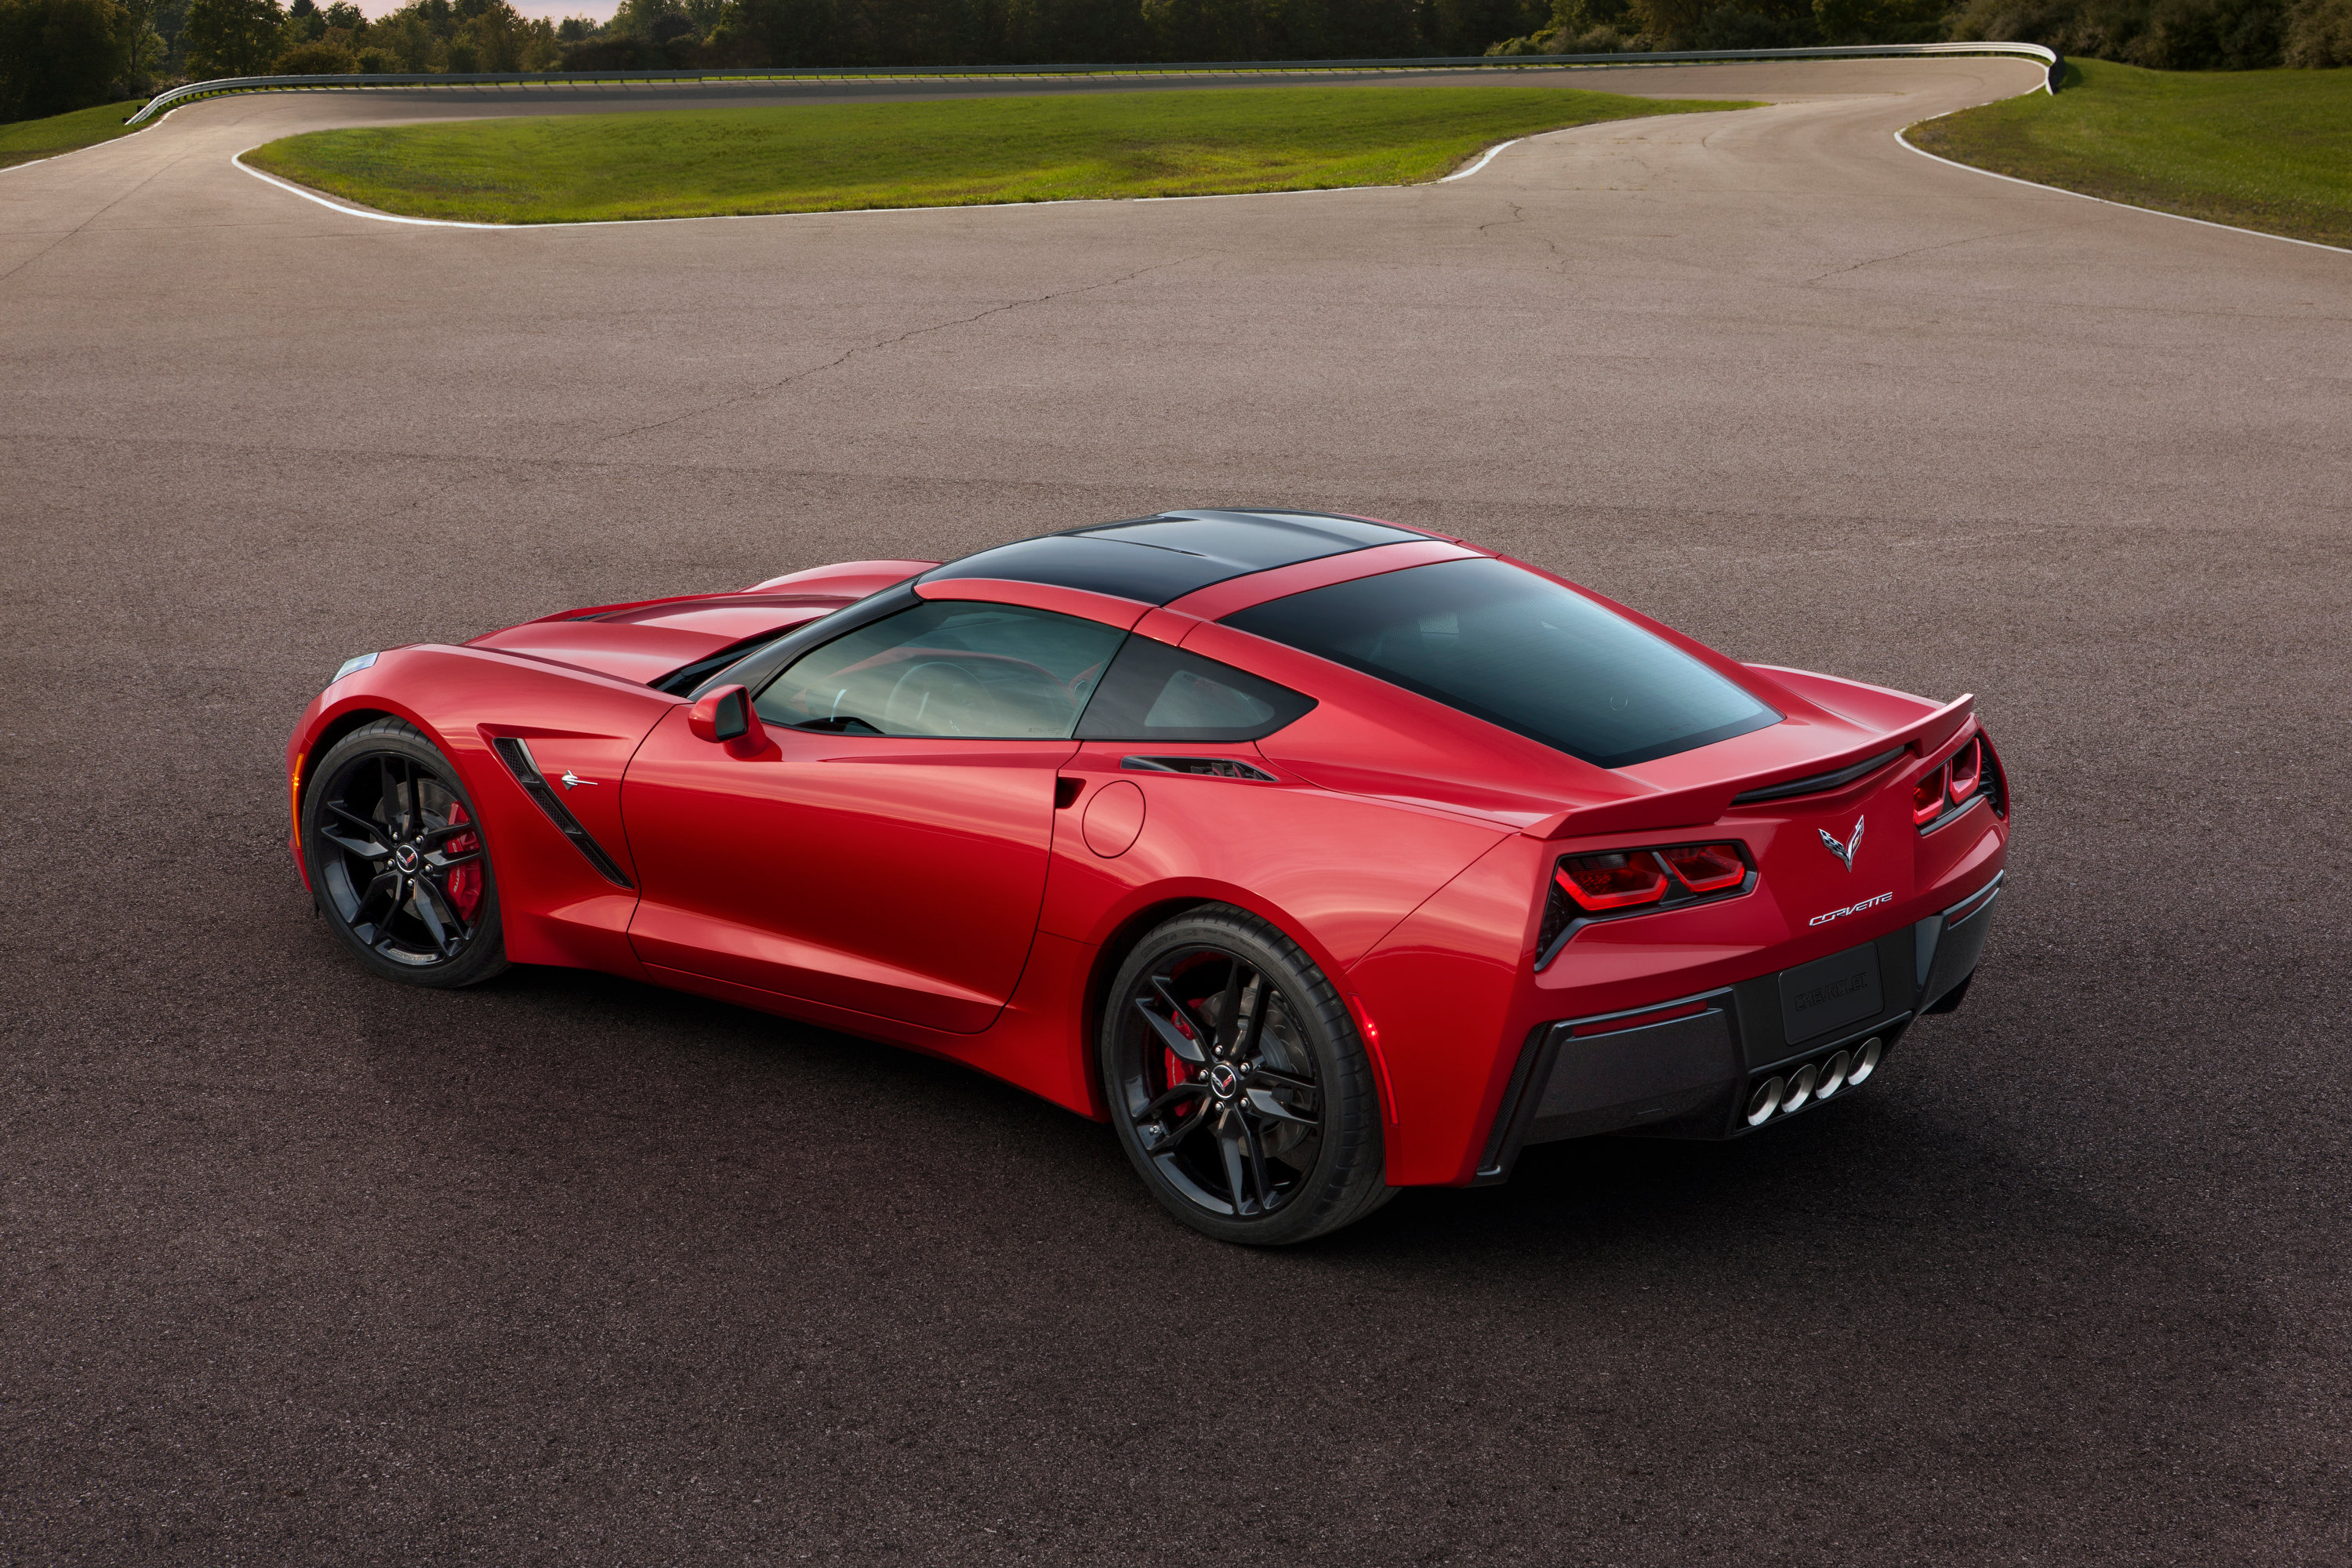 For the new Corvette to be called a Stingray, it had to deliver an